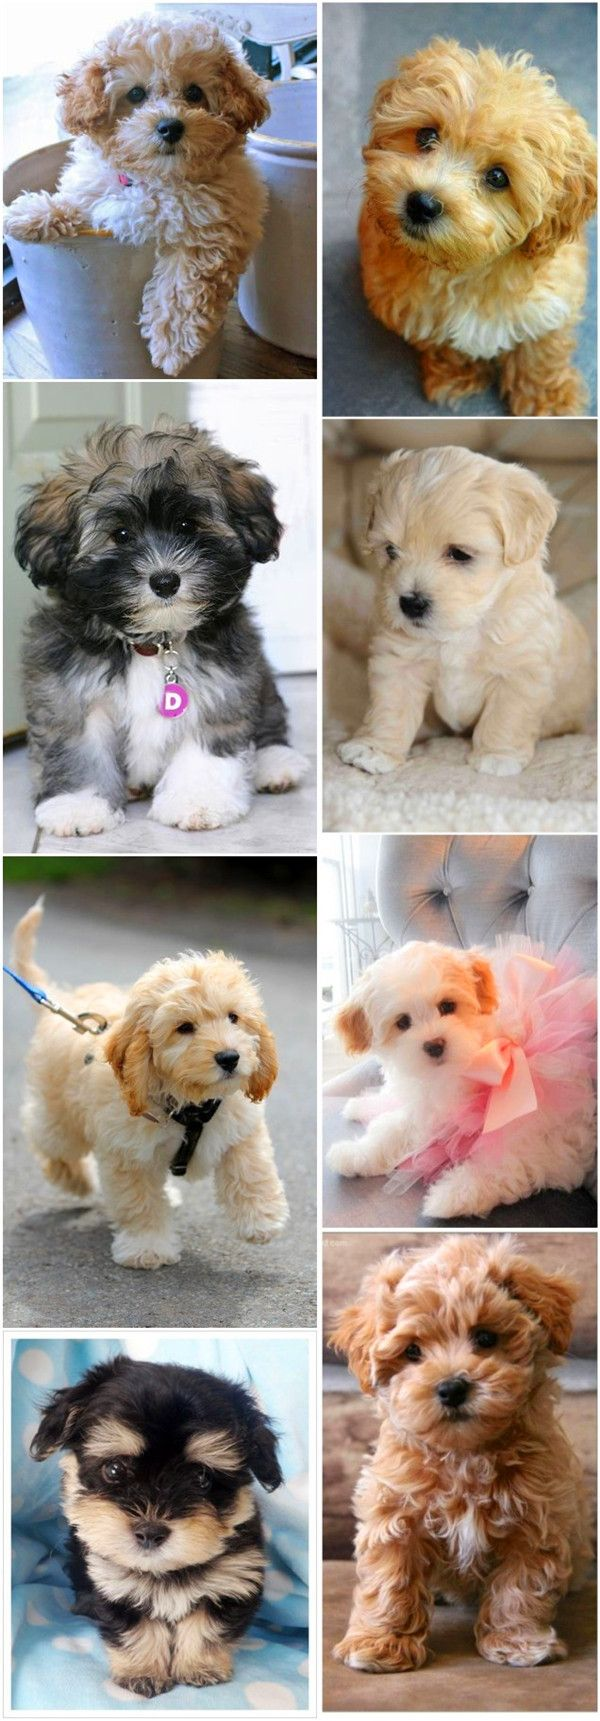 Top 15 Cutest Small Dog Breeds Page 2 Of 3 Cutest Small Dog